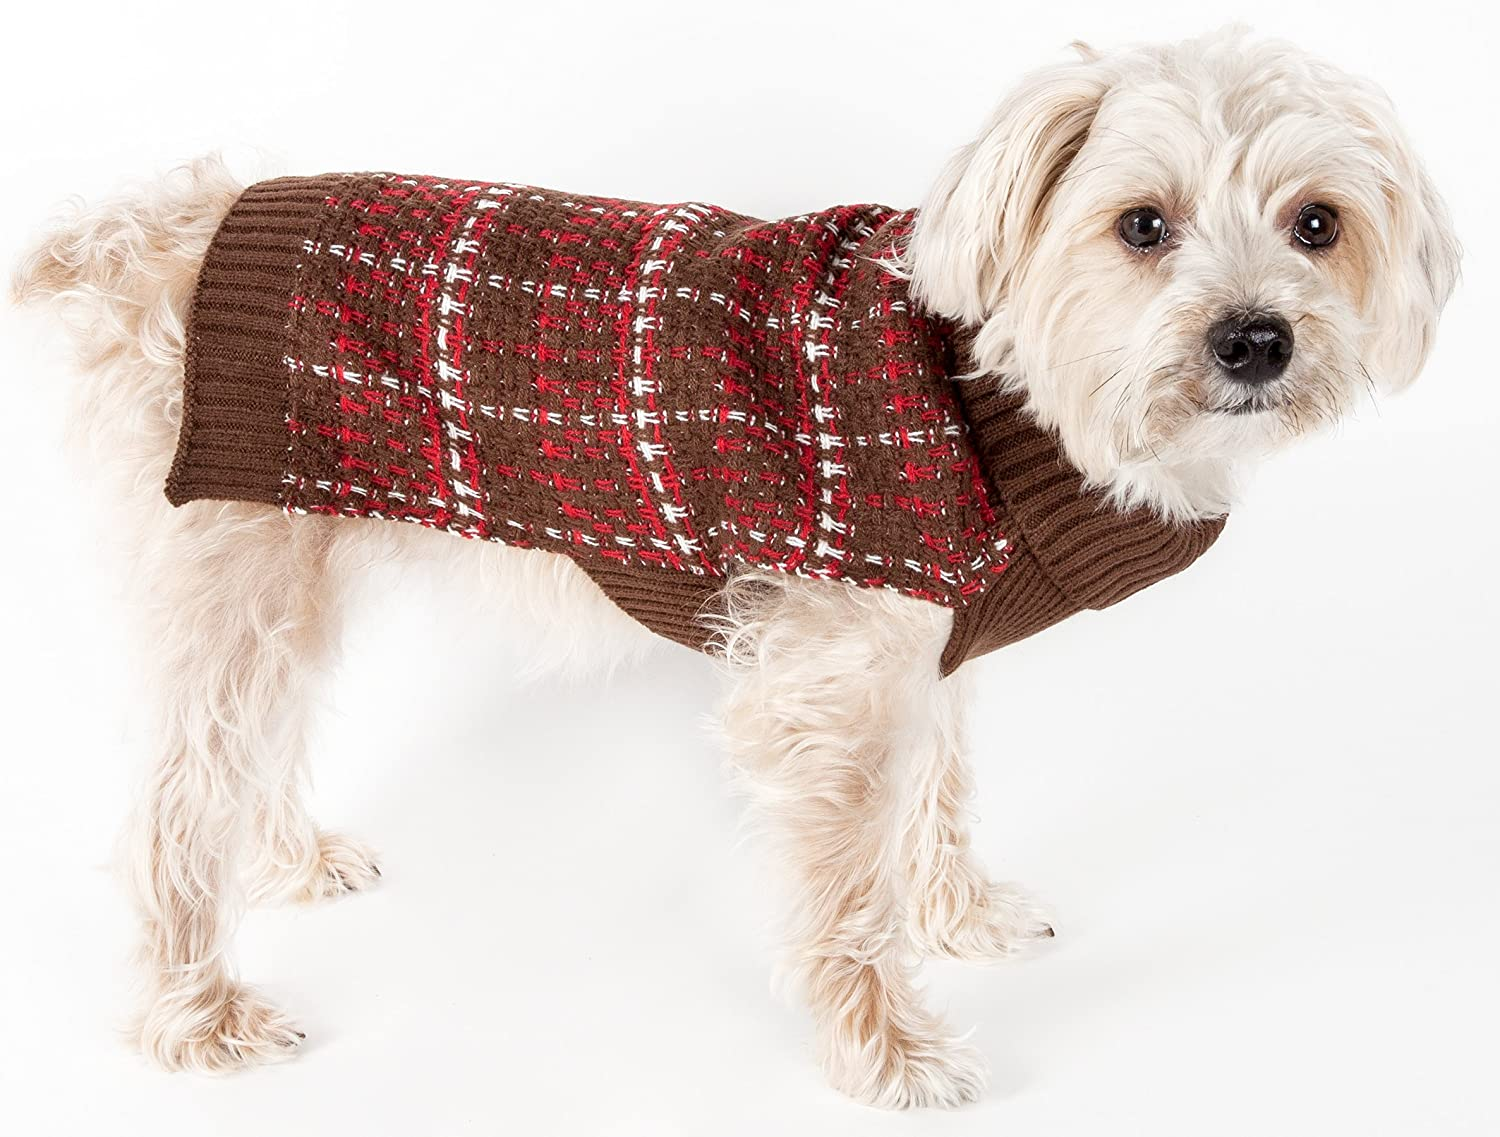 PET LIFE 'Vintage Symphony' Static Fashion Designer Knitted Pet Dog Sweater, Large, Mud Brown, Red and White